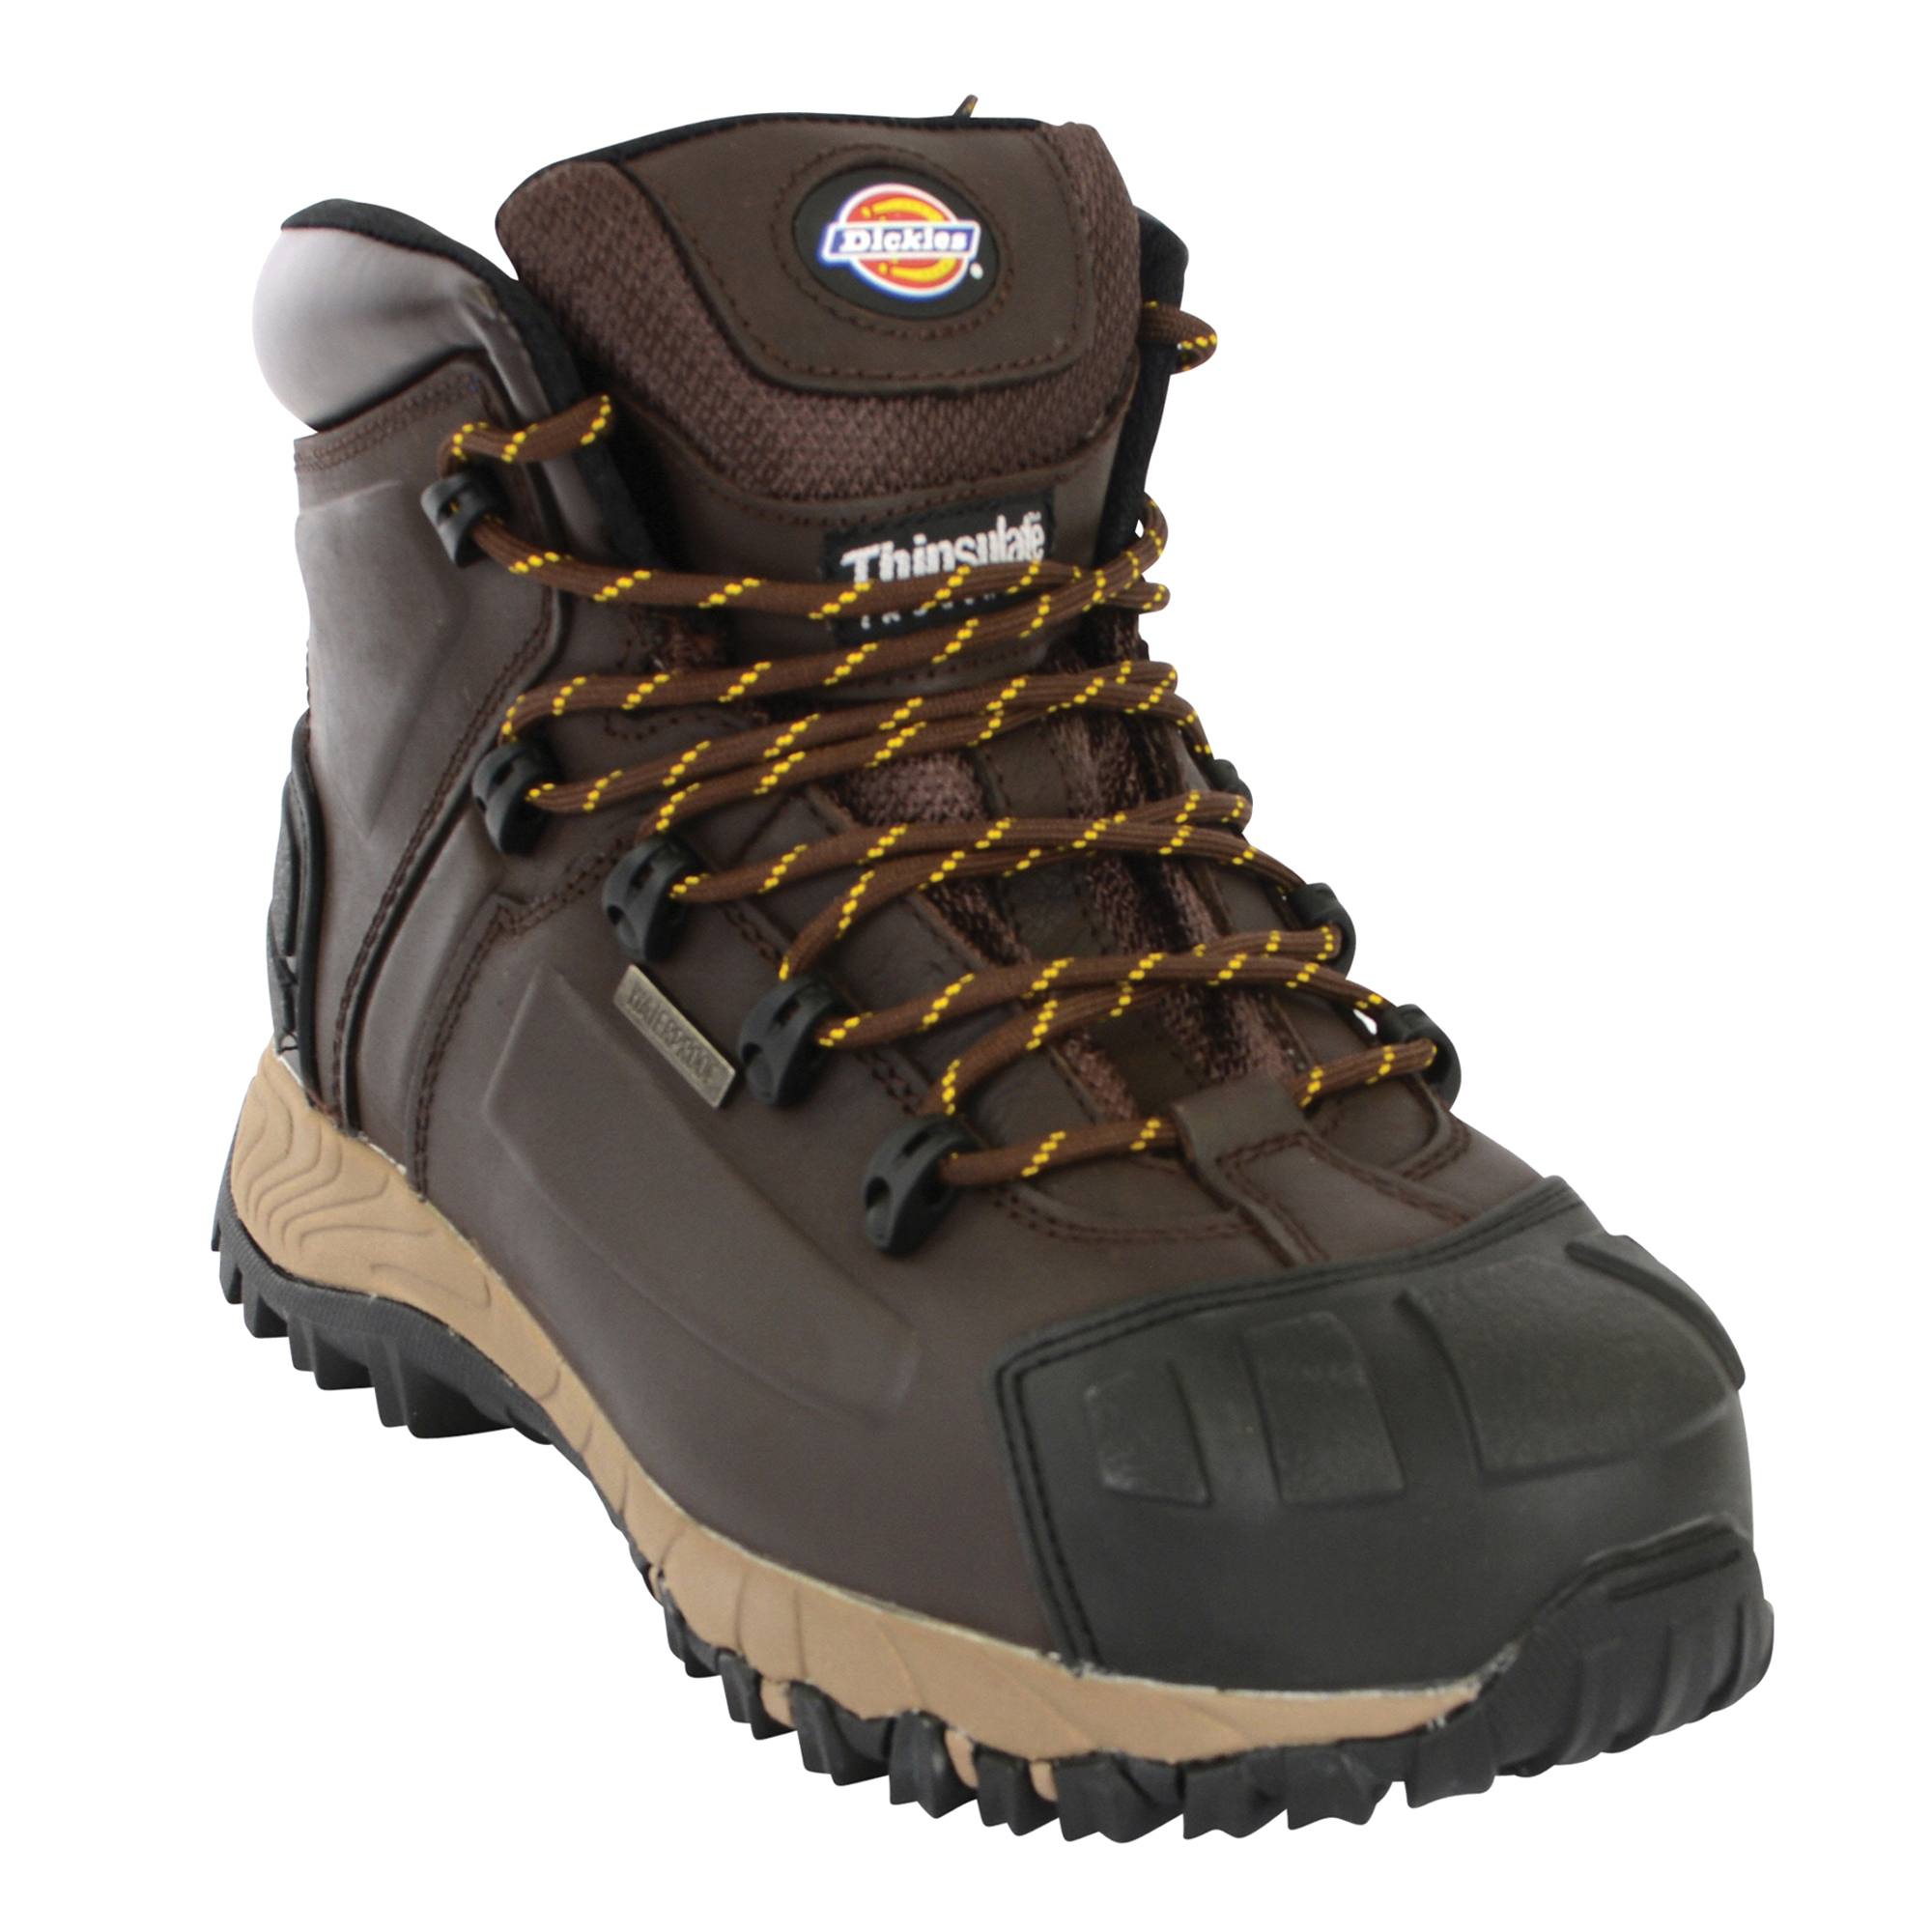 daa09cdea08 Dickies,FD23310BR,Medway Super Safety Boot - Brown